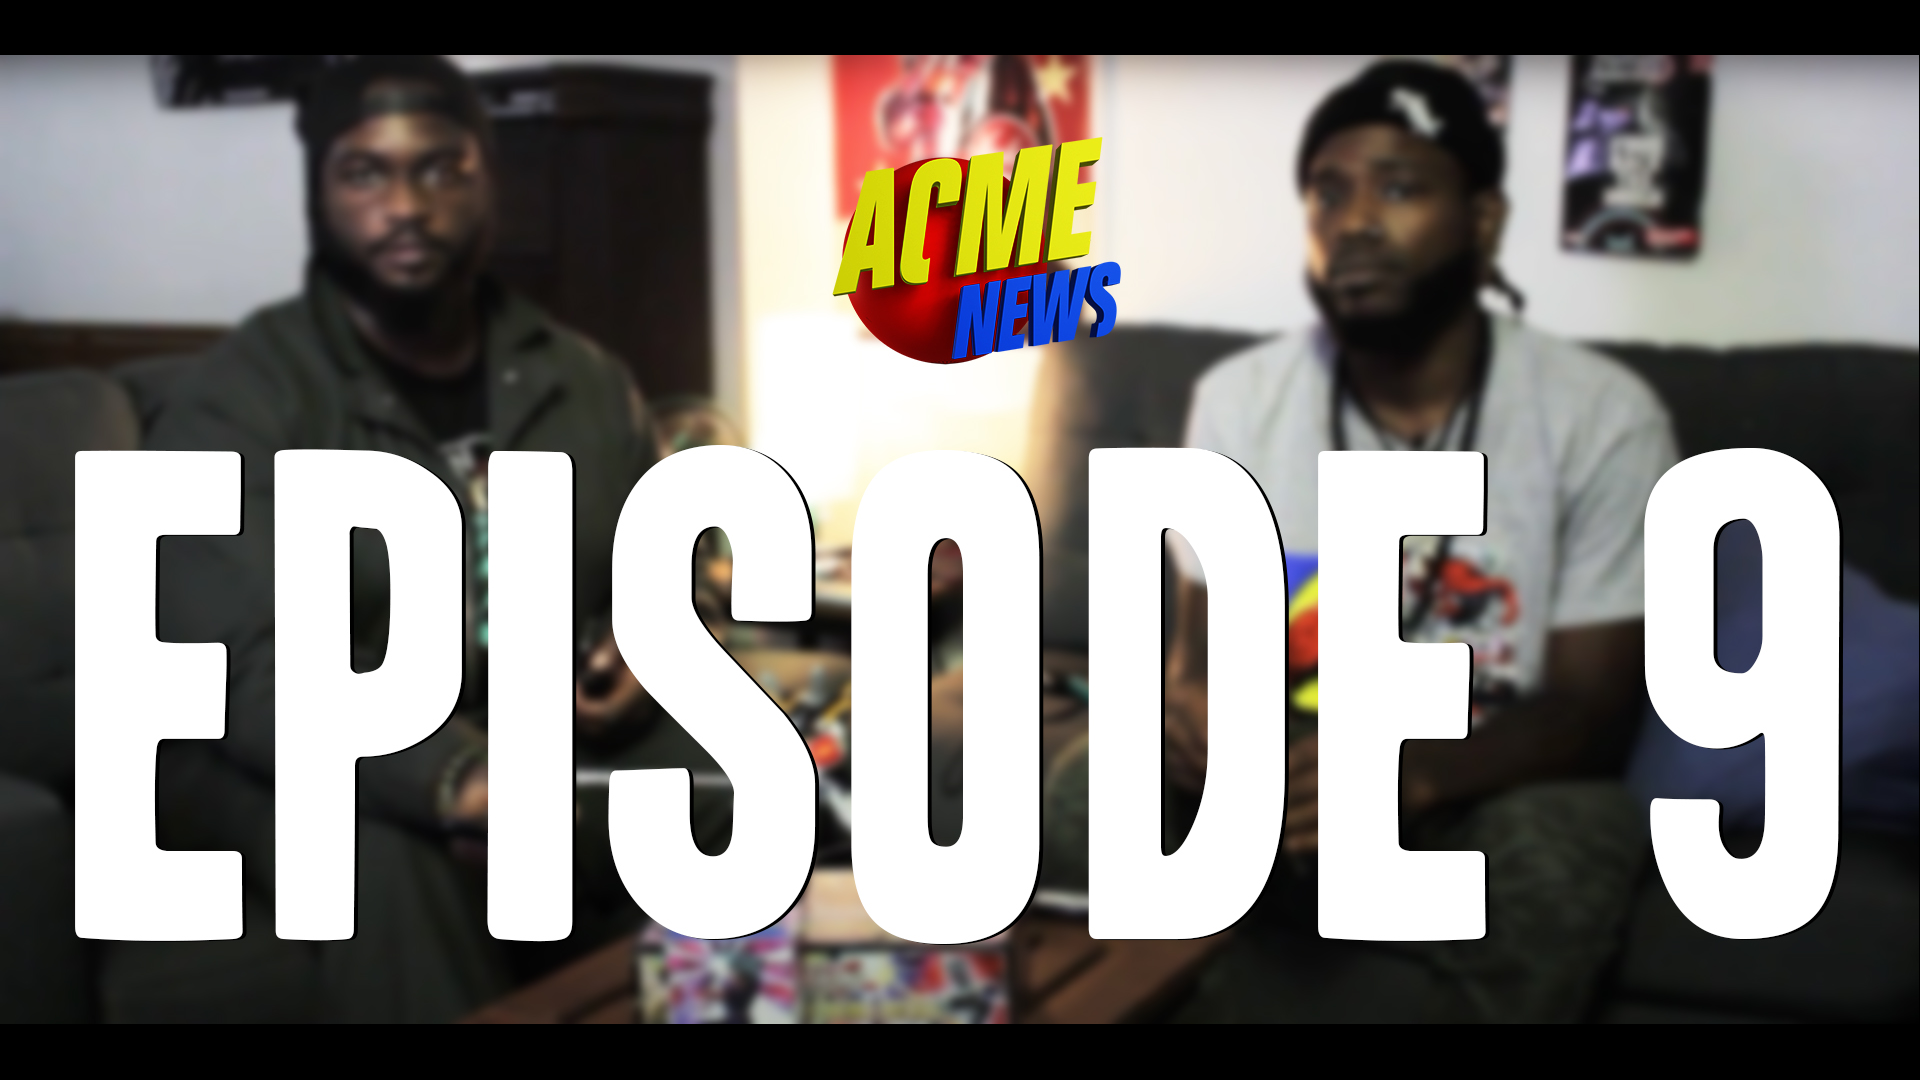 Acme News Season 1 Episode 9